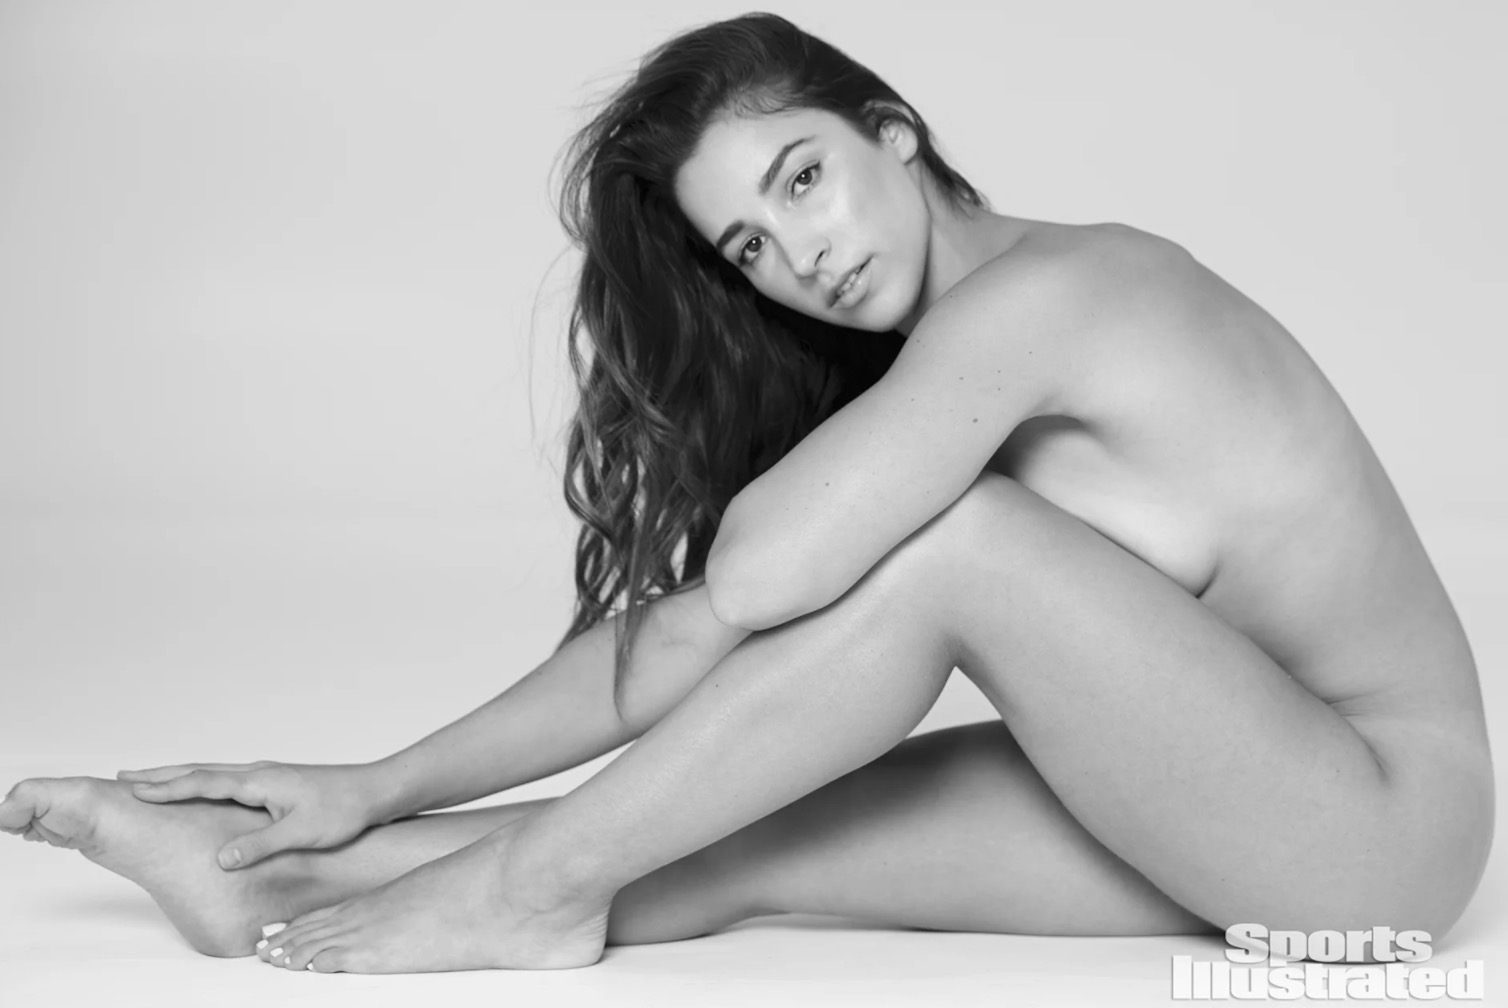 Aly Raisman hot and nude